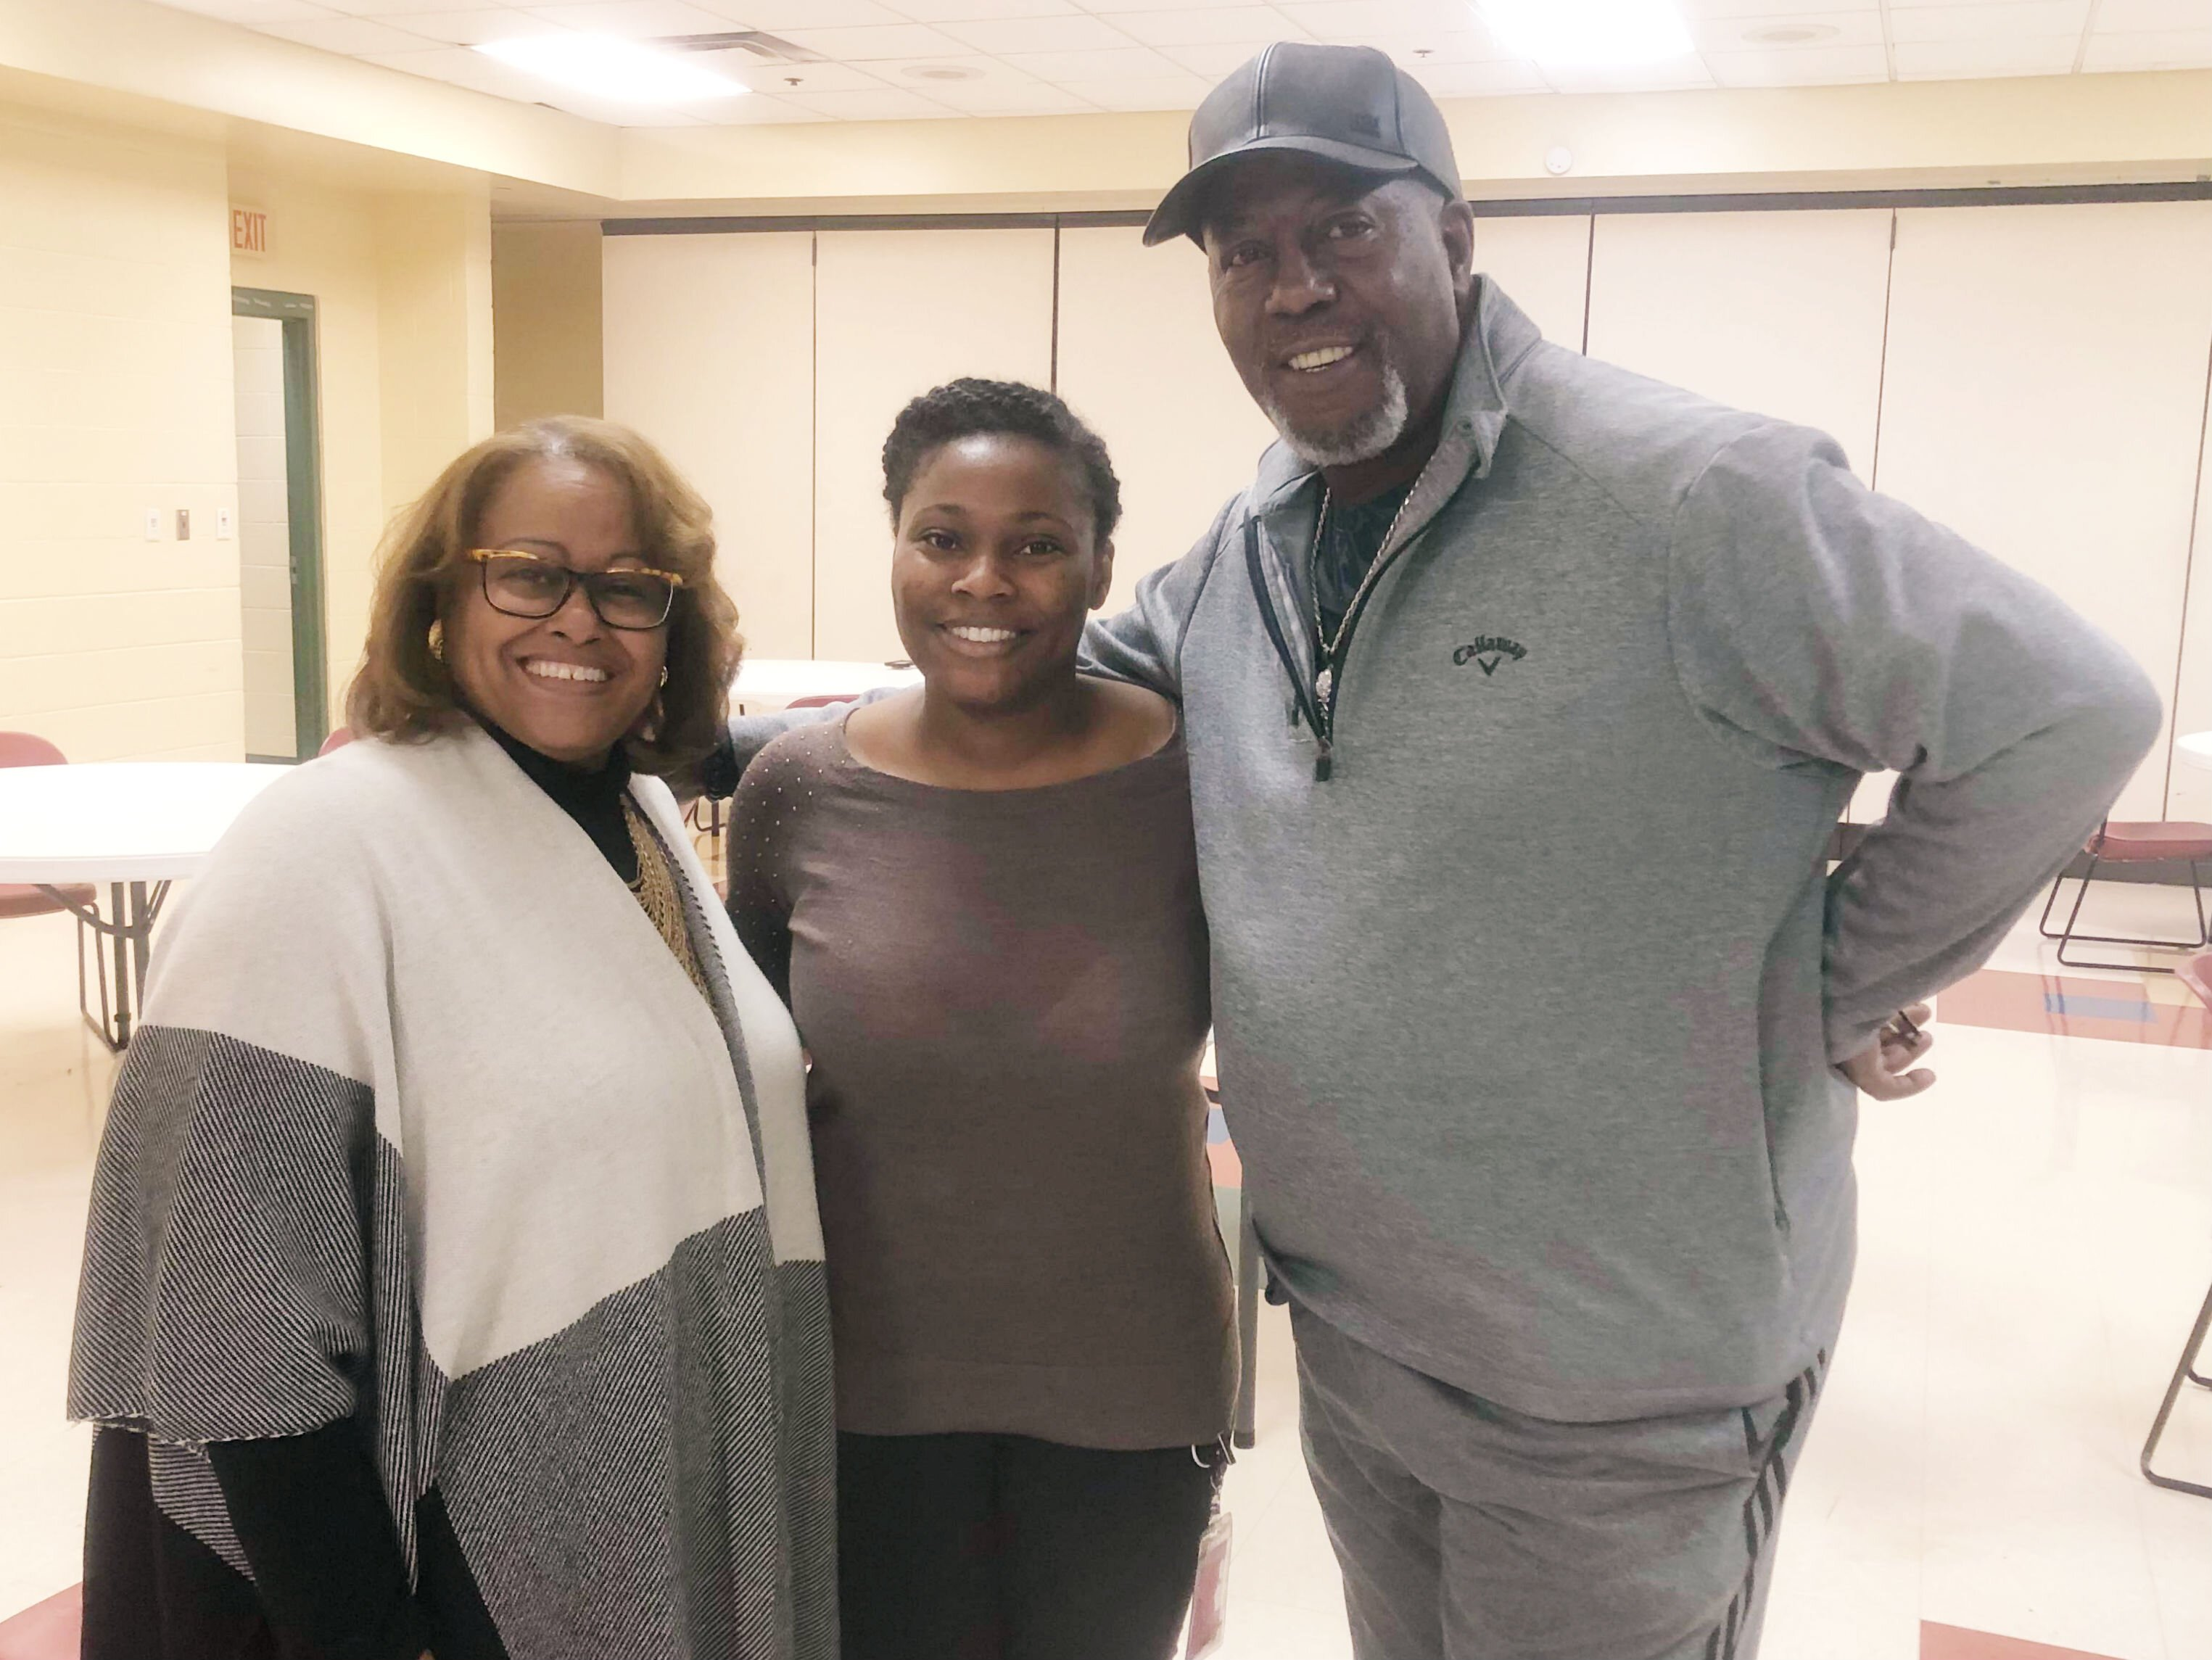 L to R: Councilwoman Patrice Robinson, her assistant, LaKevia Perry, and Hickory Hill resident Rorey Lawrence pose for a photo at the community holiday party held at the Hickory Hill Community Center on November 7. (A.J.Dugger III)